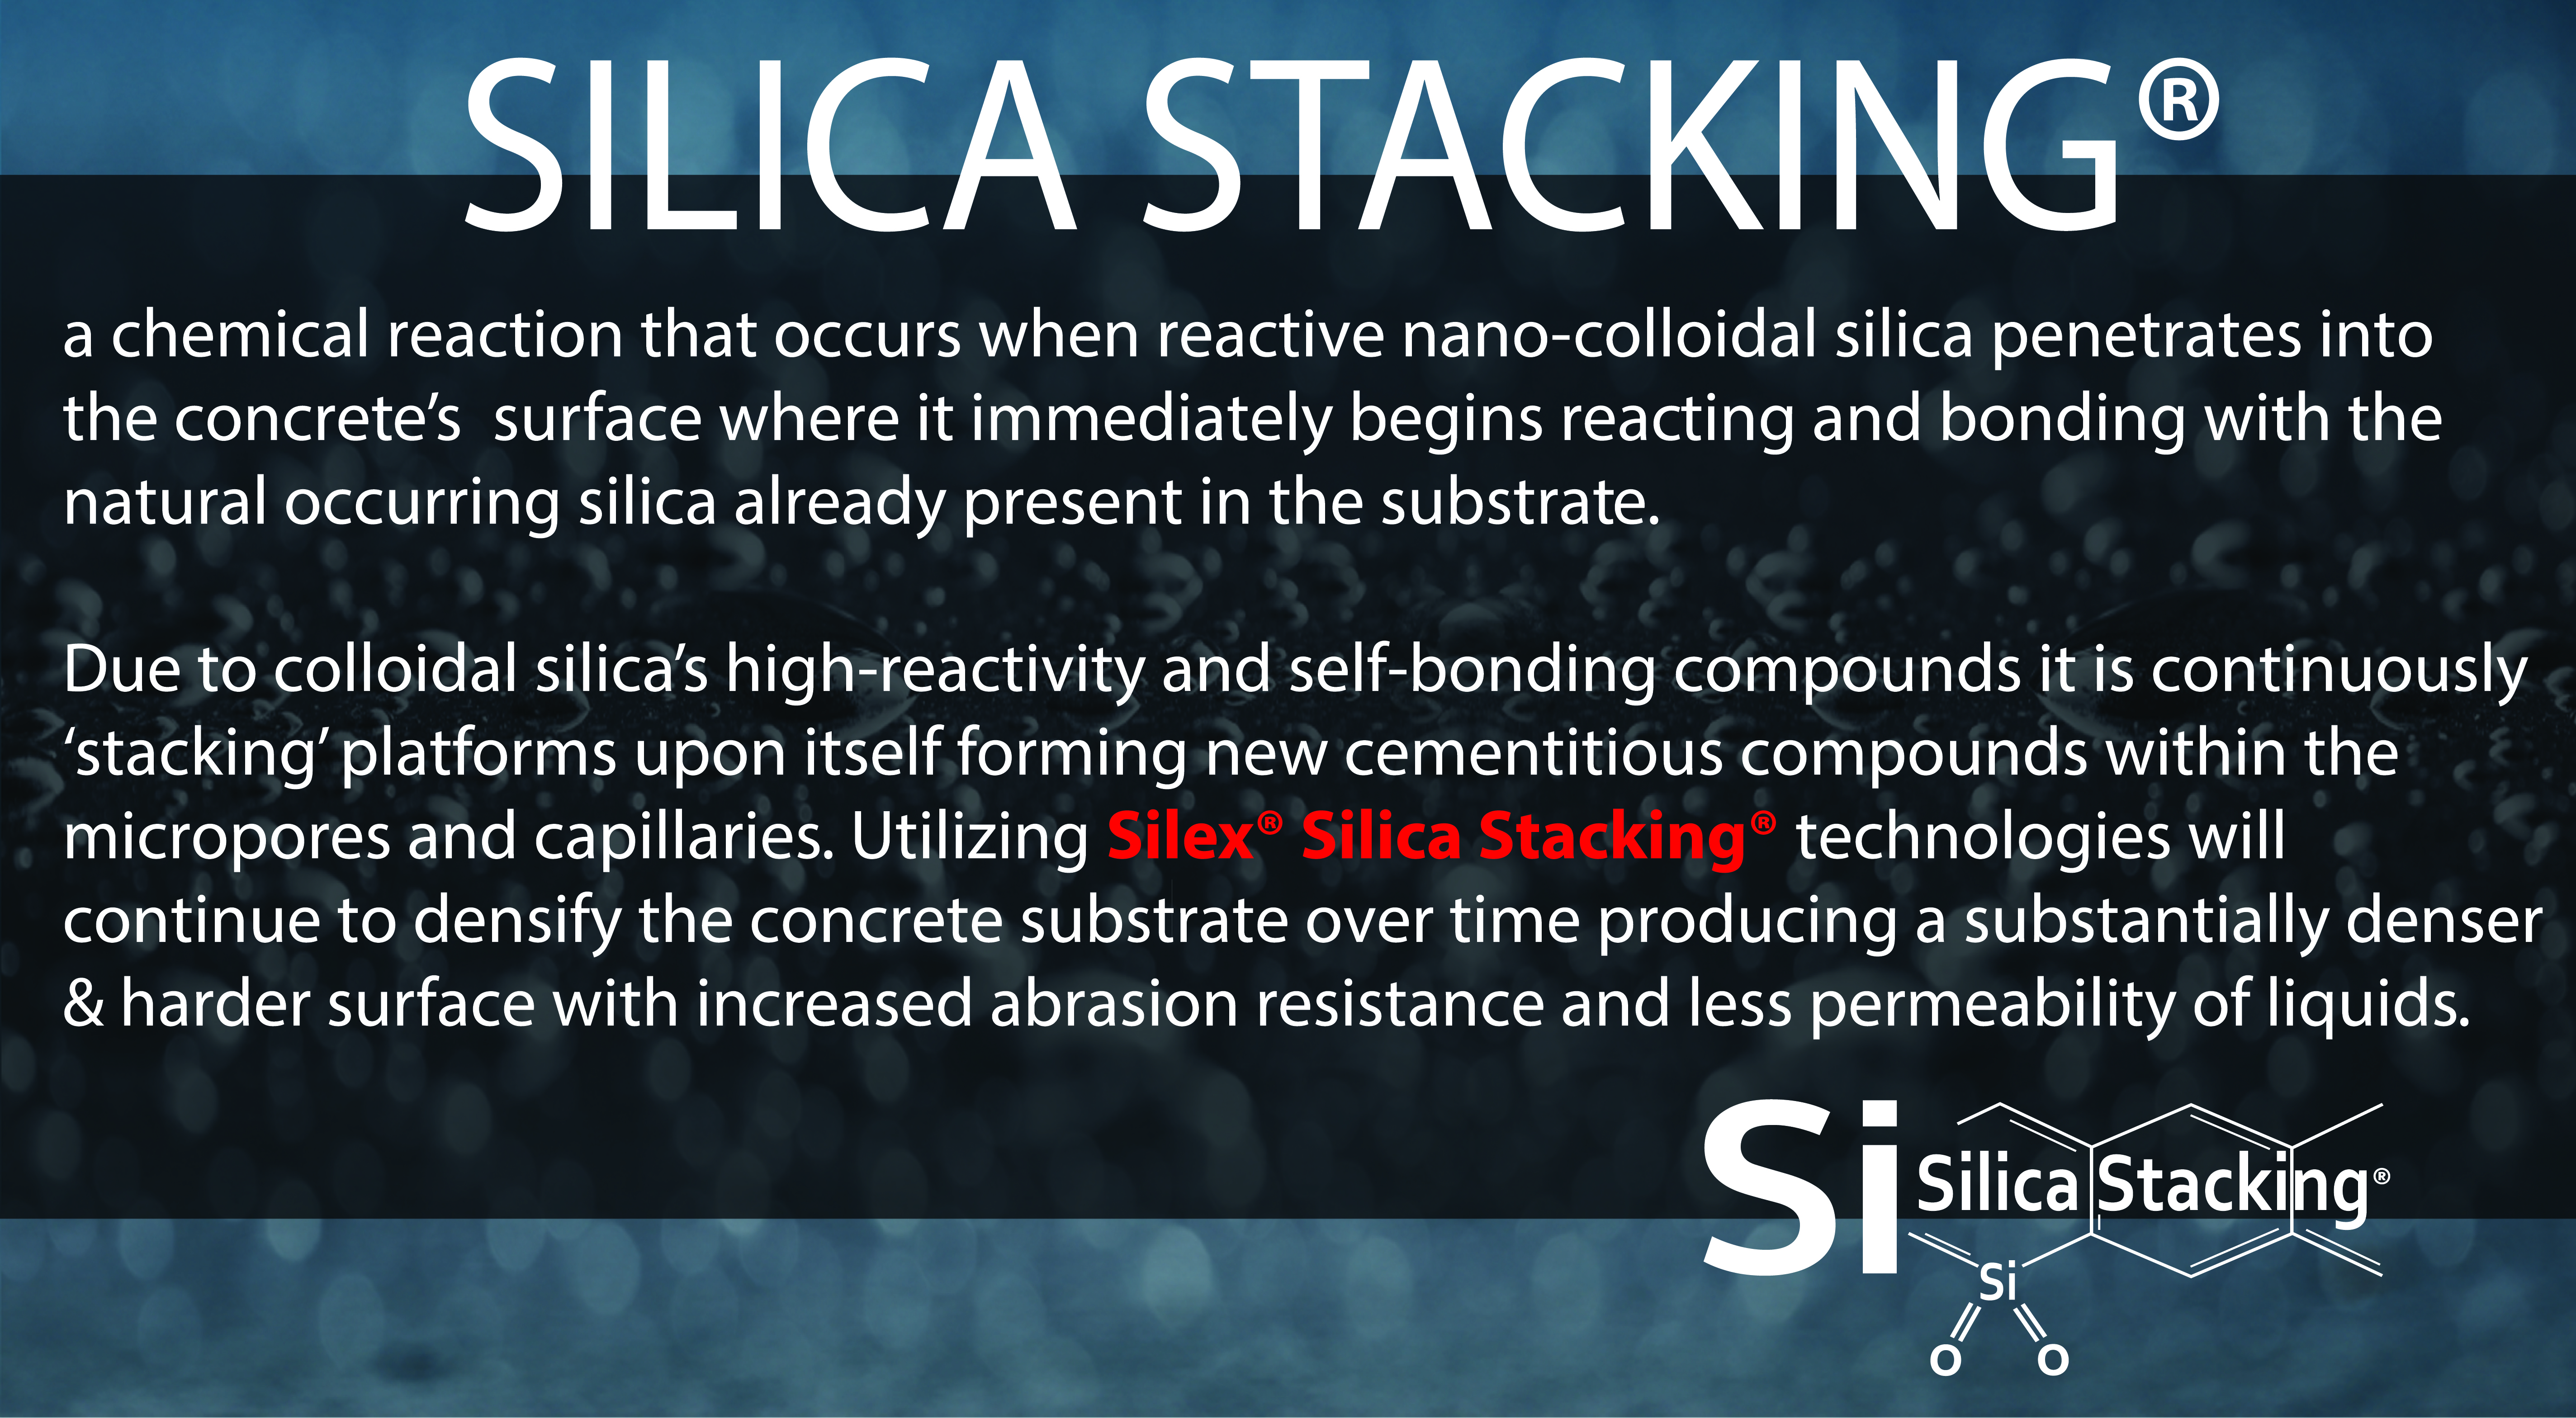 Silica Stacking